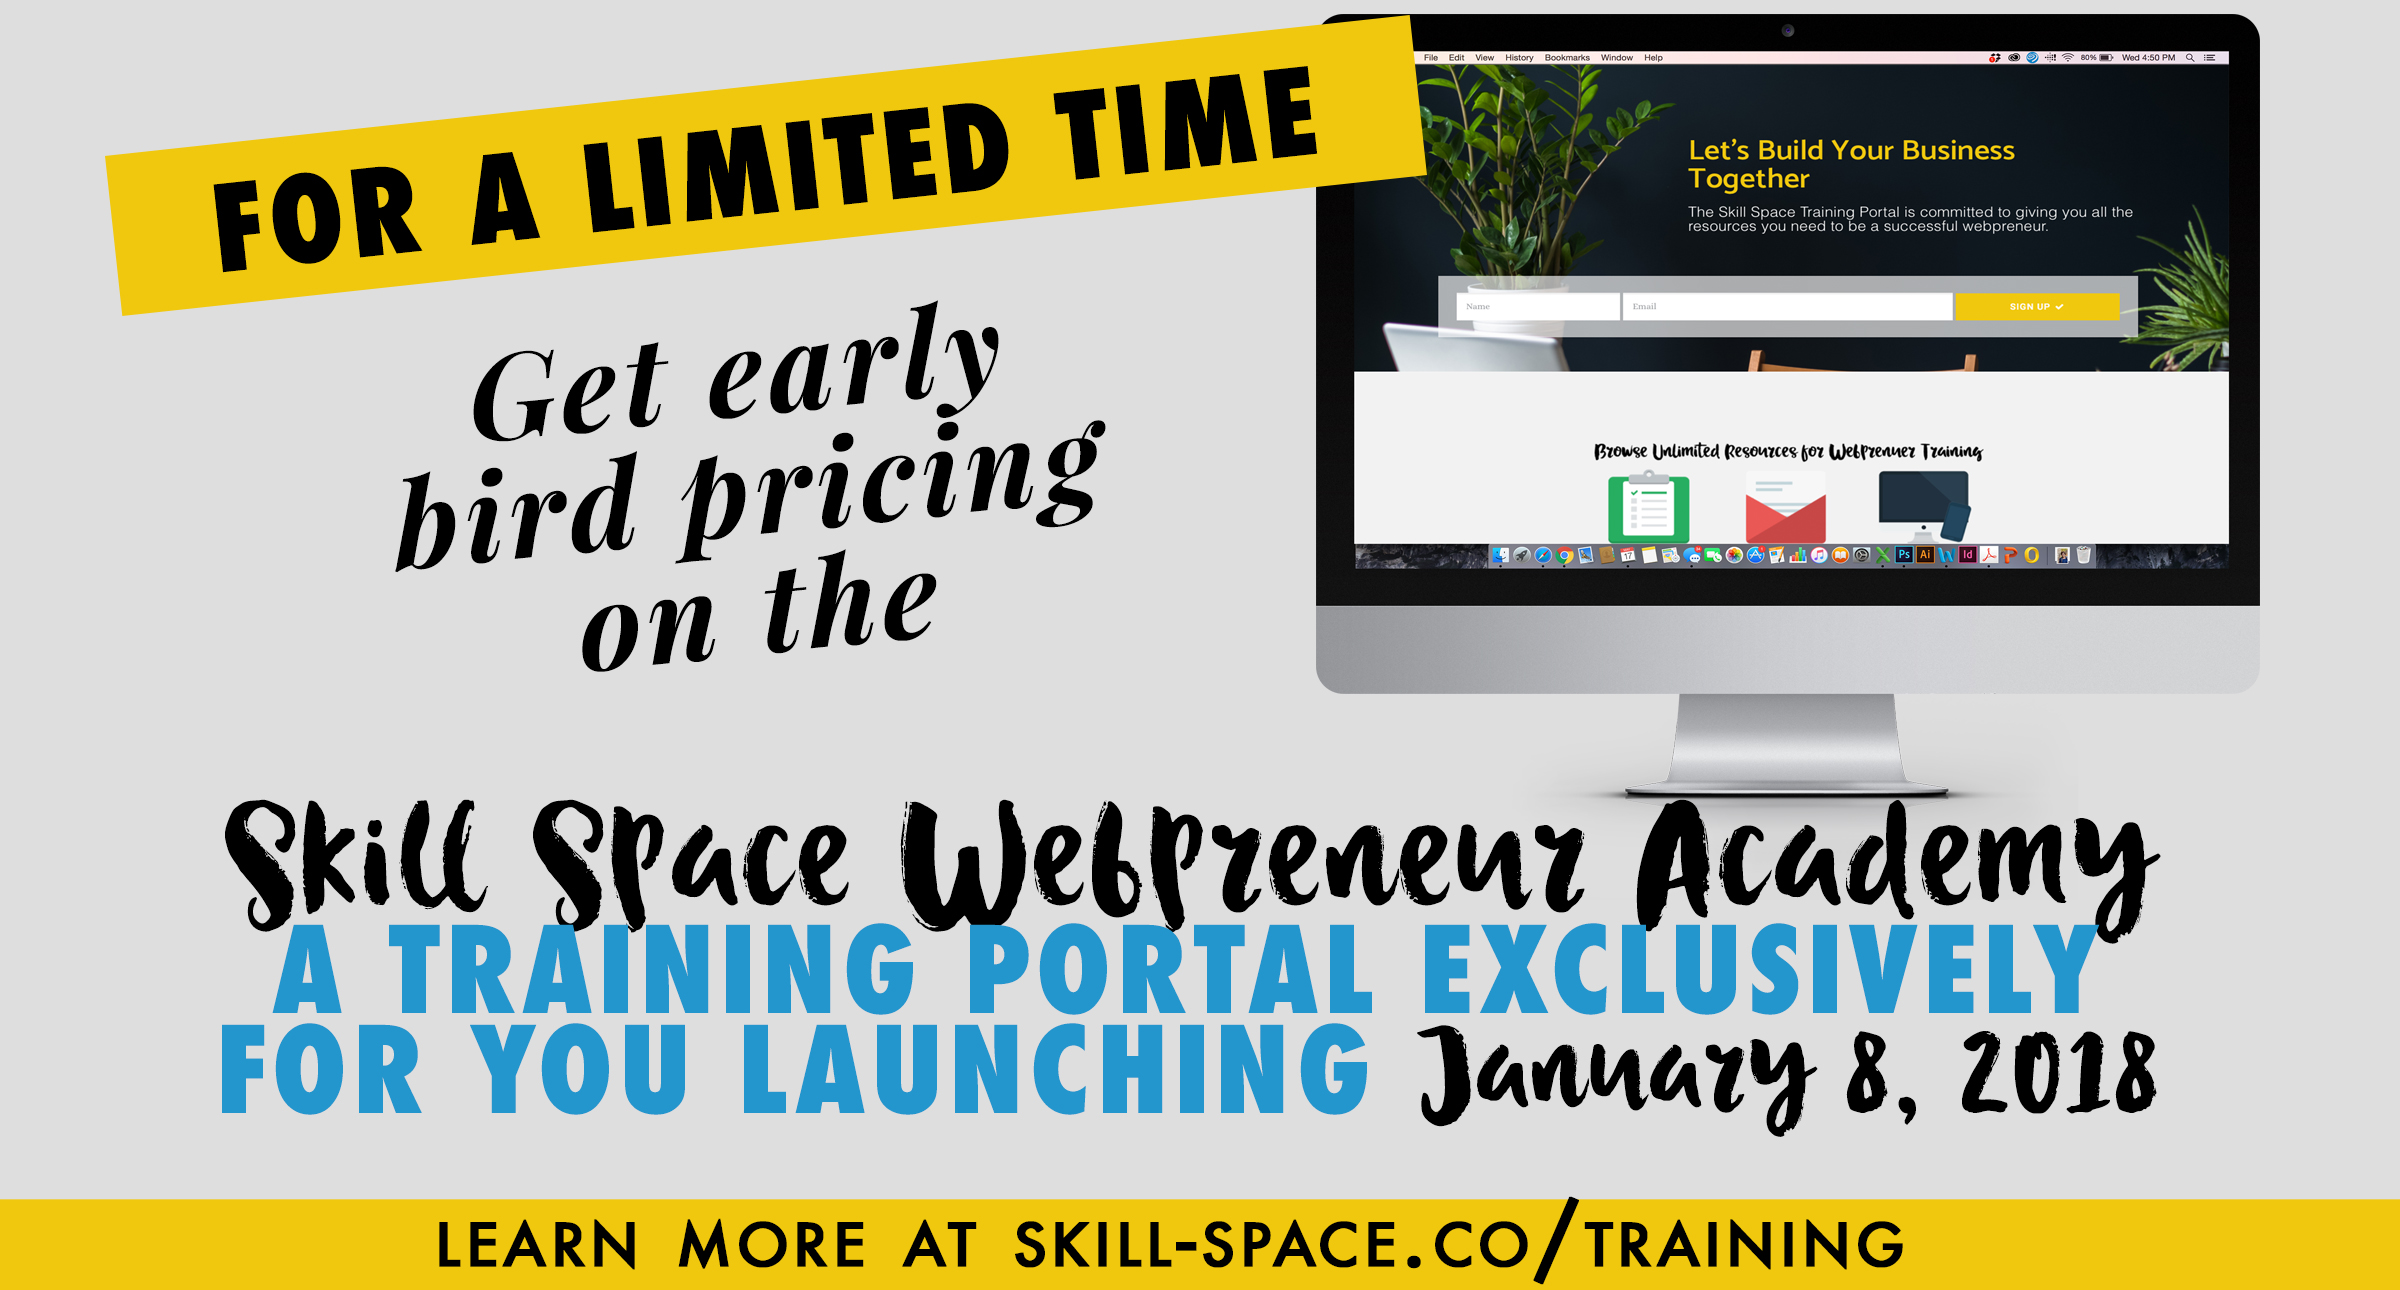 Click here to learn more about the Skill Space webpreneur academy